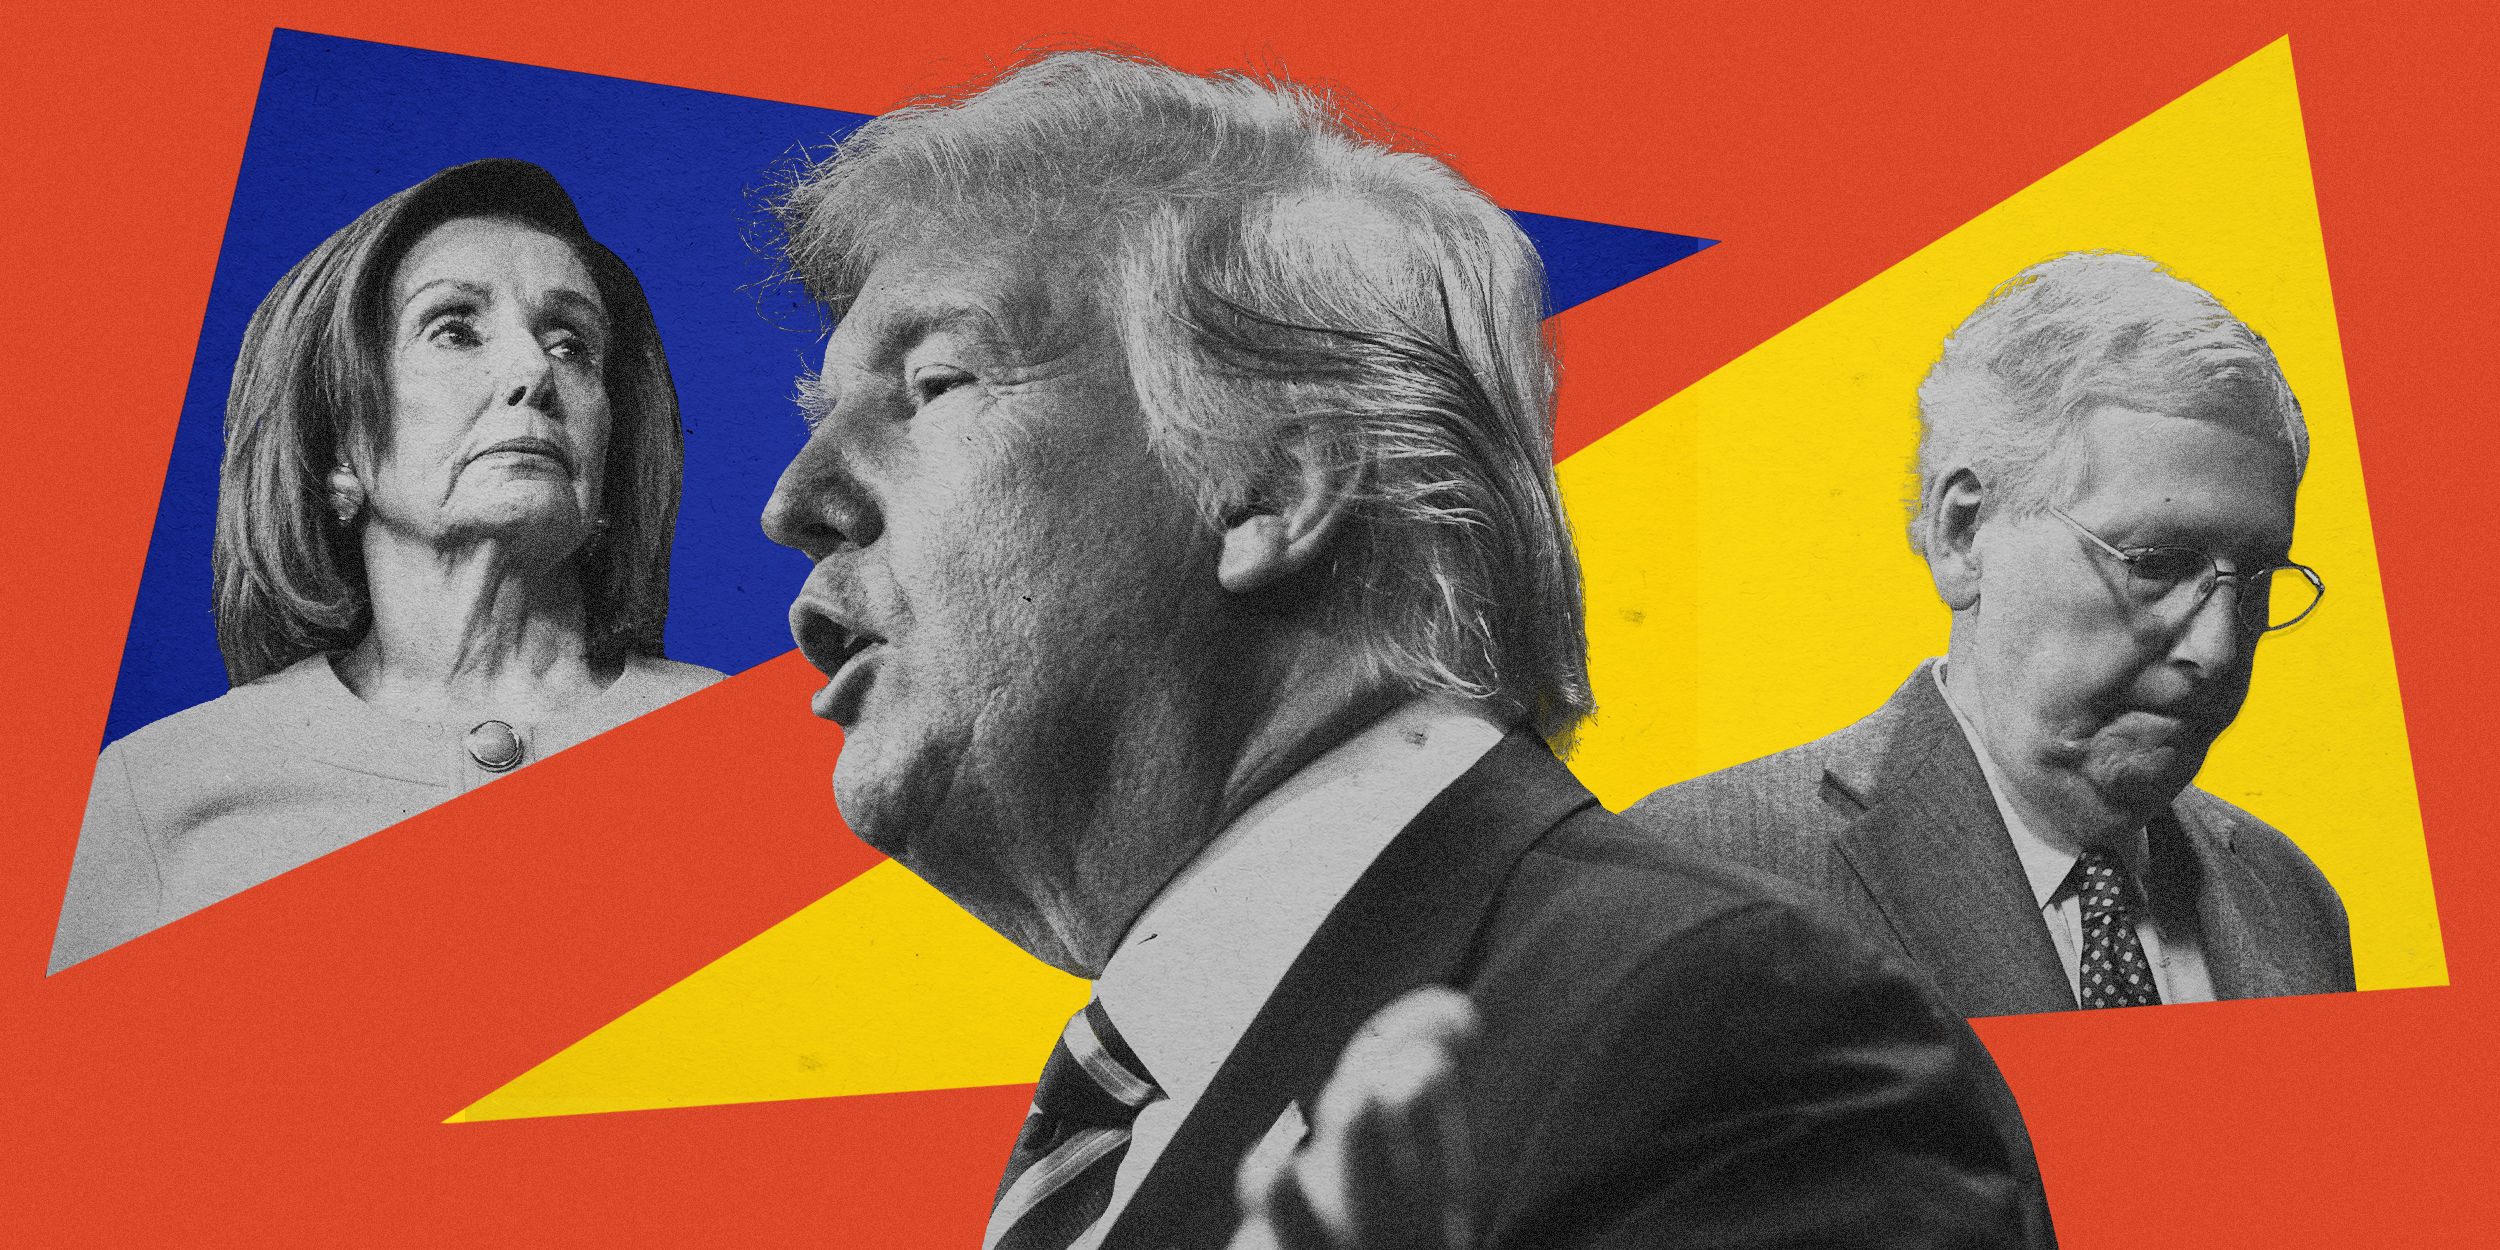 Demings Brushes Aside Questions About Trump Biden Children This Is About The President